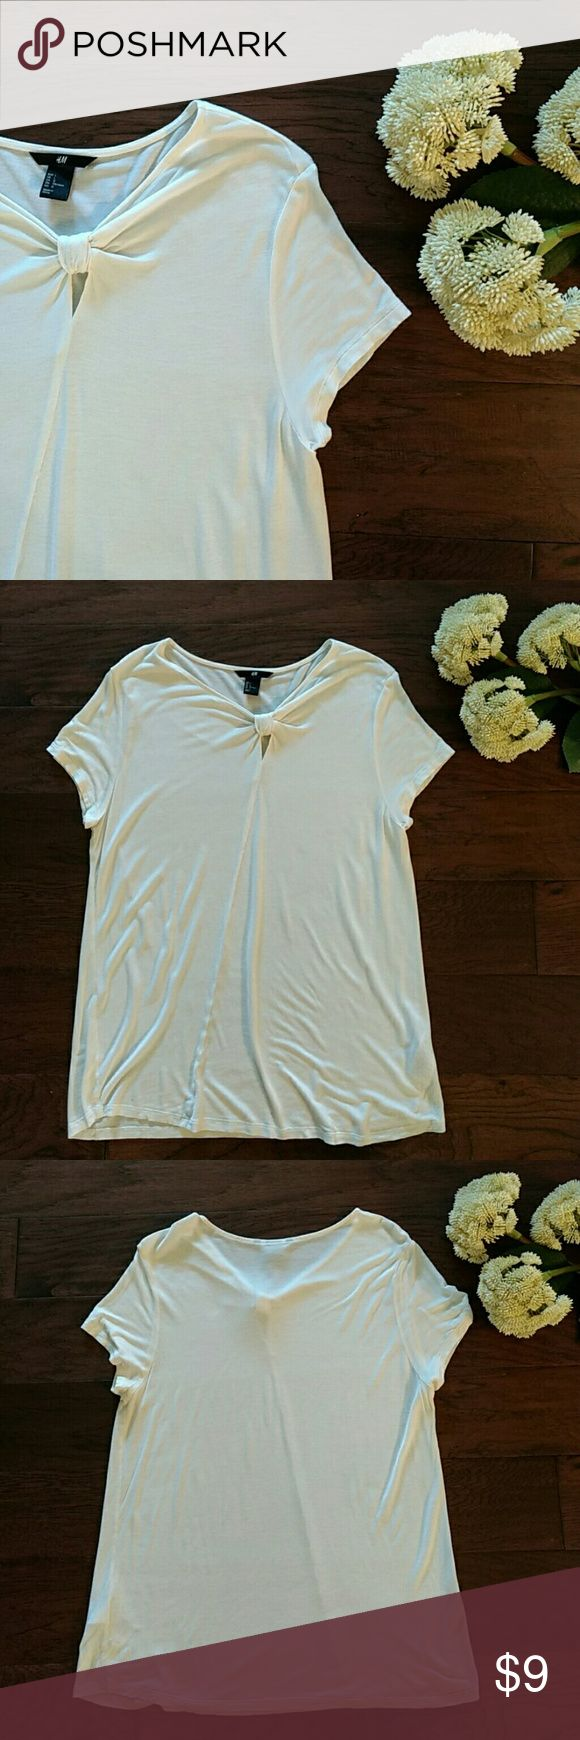 "H&M cream tee Lightweight flowing tee with front knot. In perfect condition. Pit to pit measurement is 38"". Top of the shoulder to the hem is 26"" H&M Tops Tees - Short Sleeve"